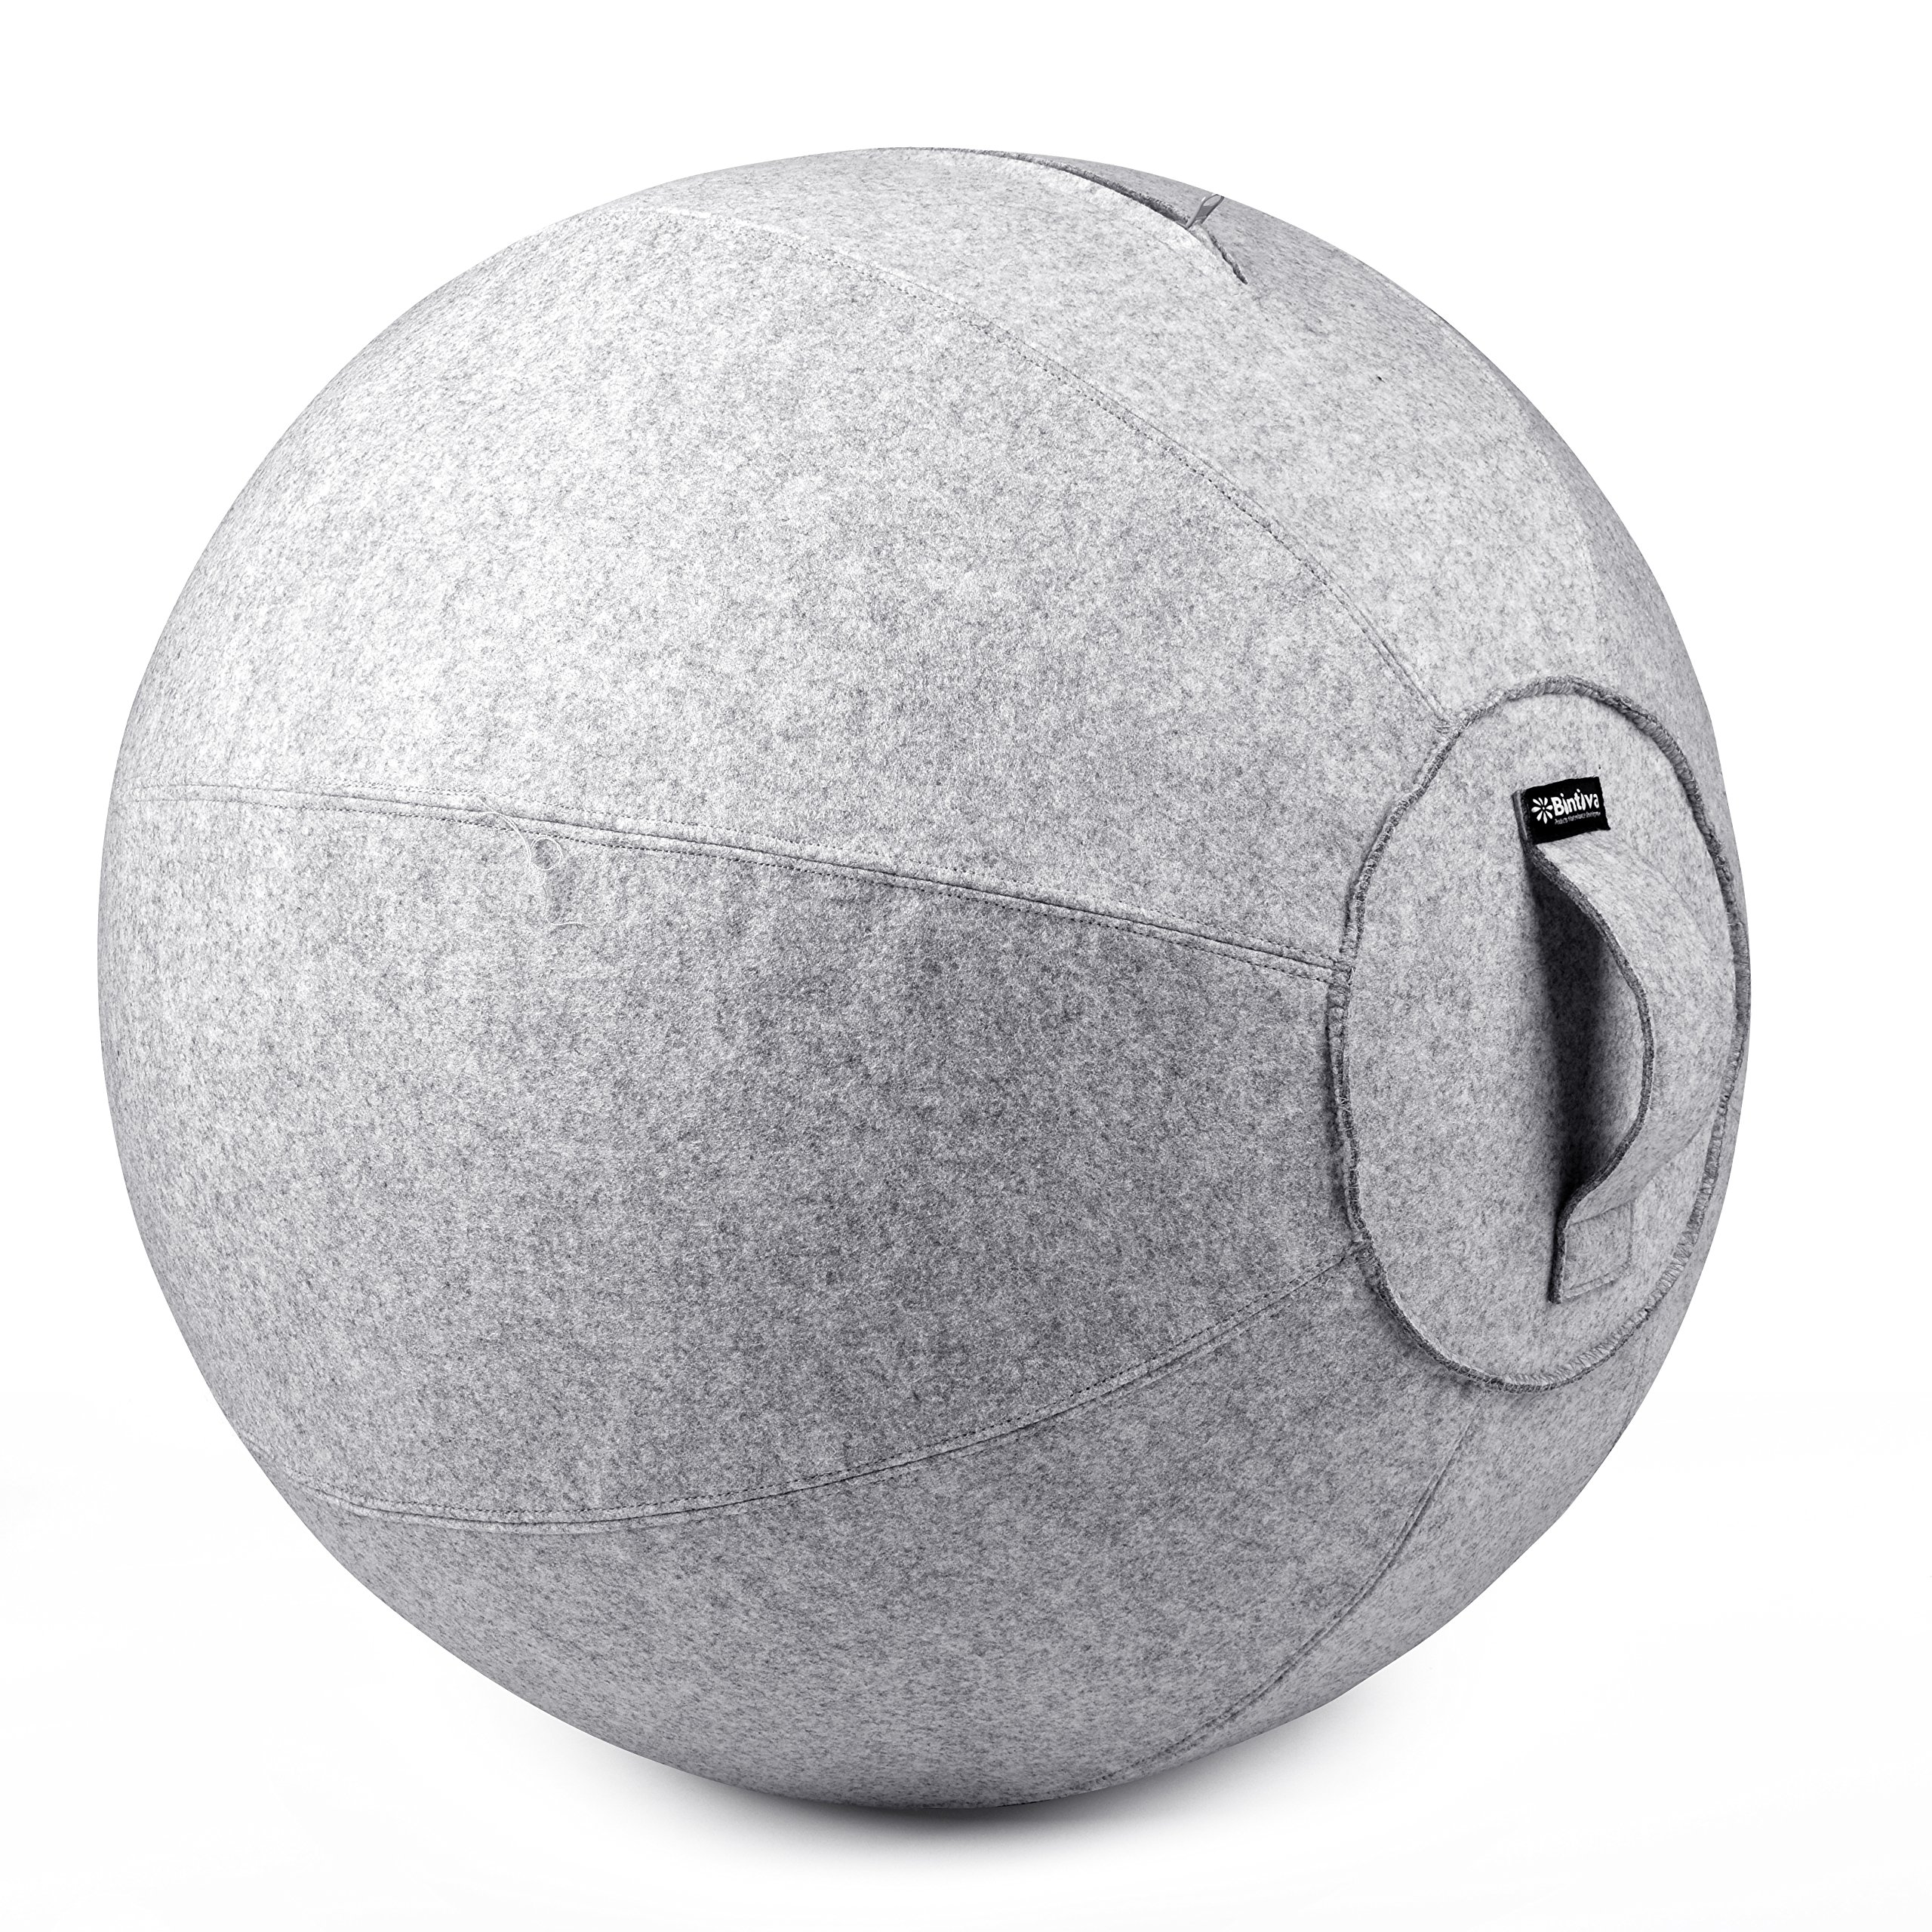 Stability Ball Chair for Office - Ergonomic Seating/Labor Birthing Pregnancy/Yoga Balance Stability Exercise Fitness - Felt Cover by bintiva